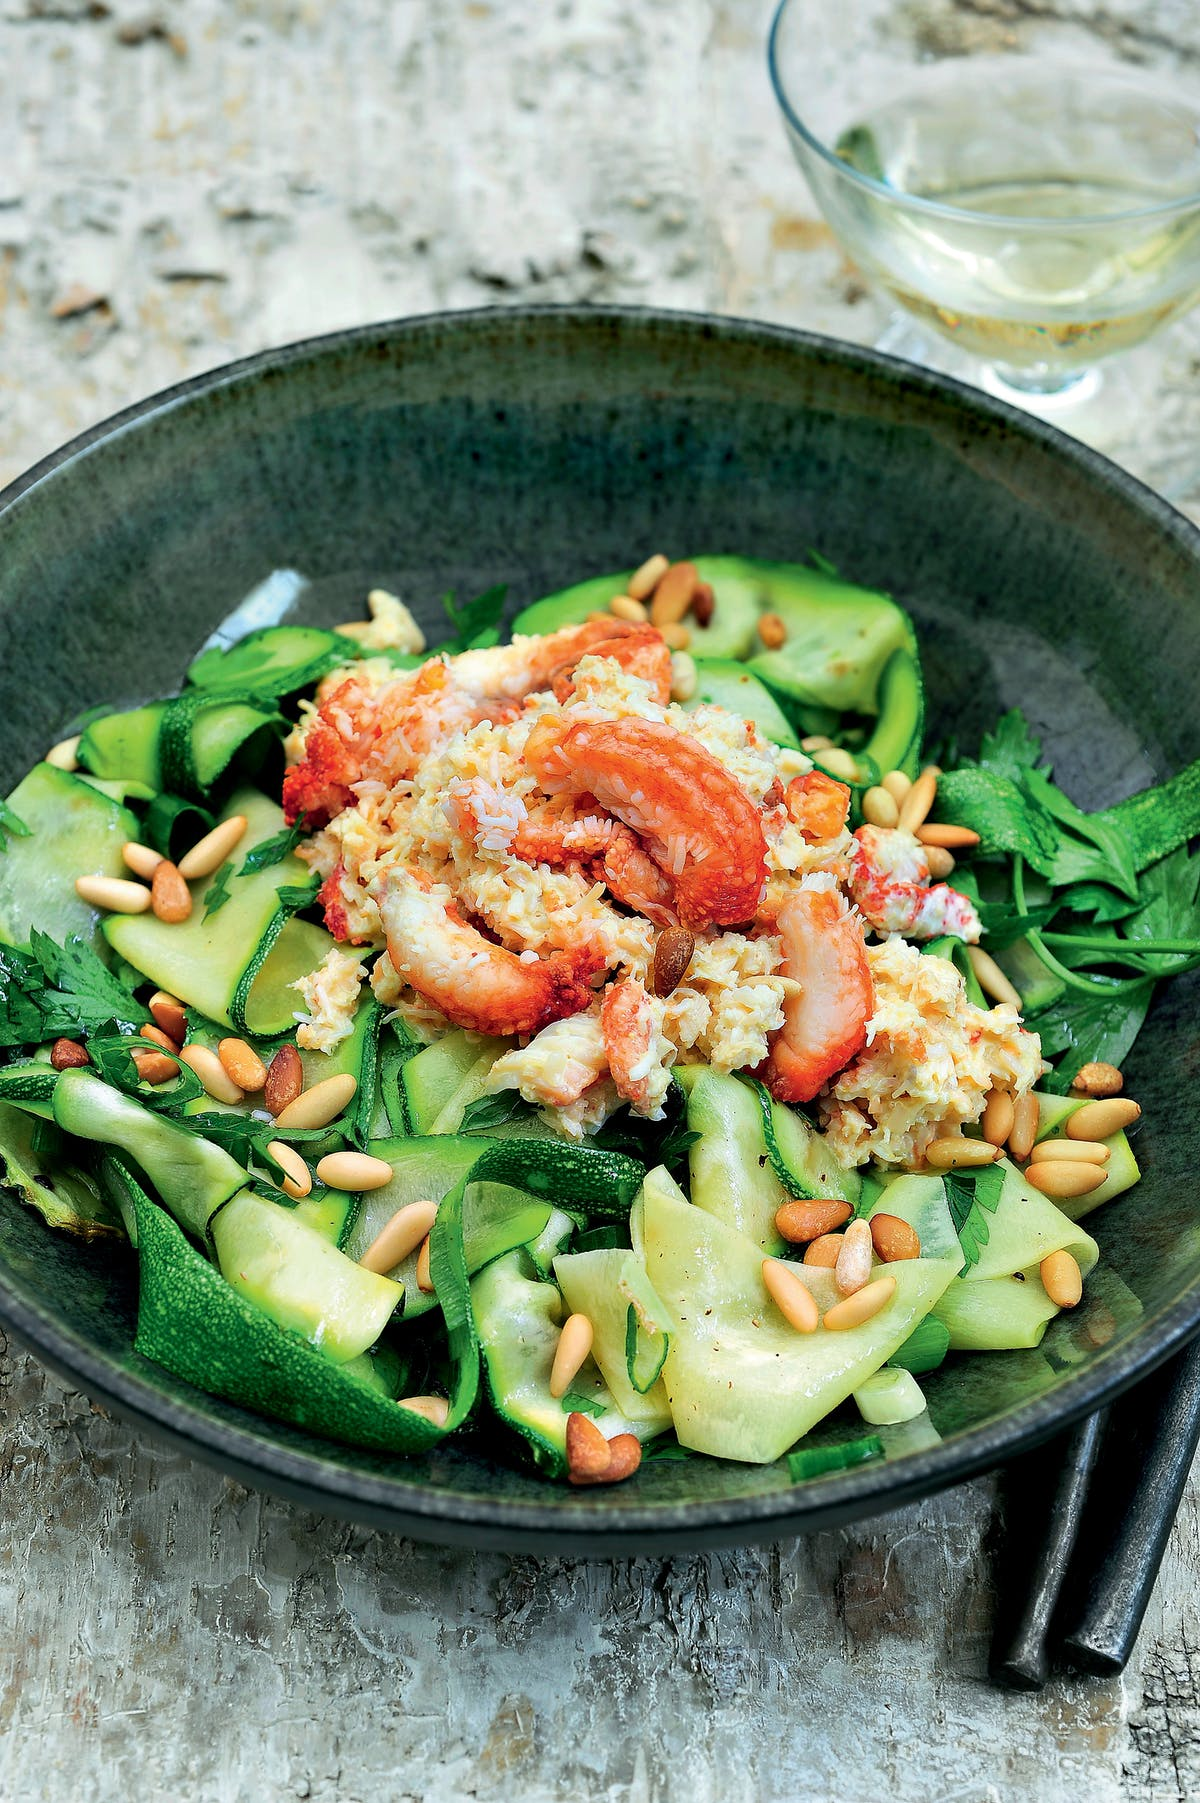 Zucchini noodles with crab